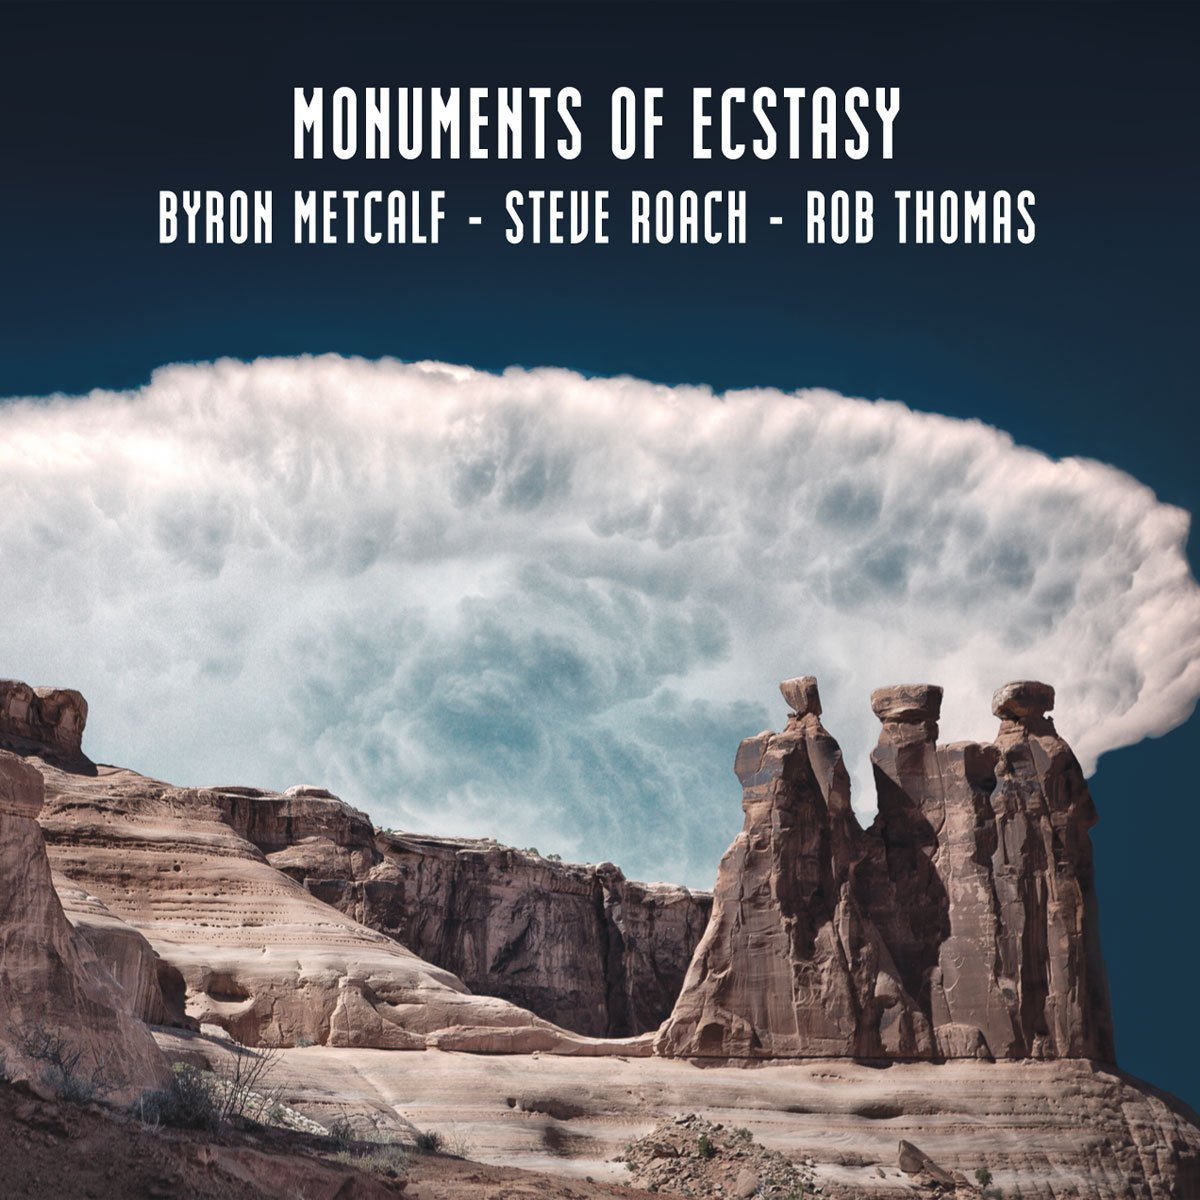 Byron Metcalf / Steve Roach / Rob Thomas — Monuments of Ecstasy